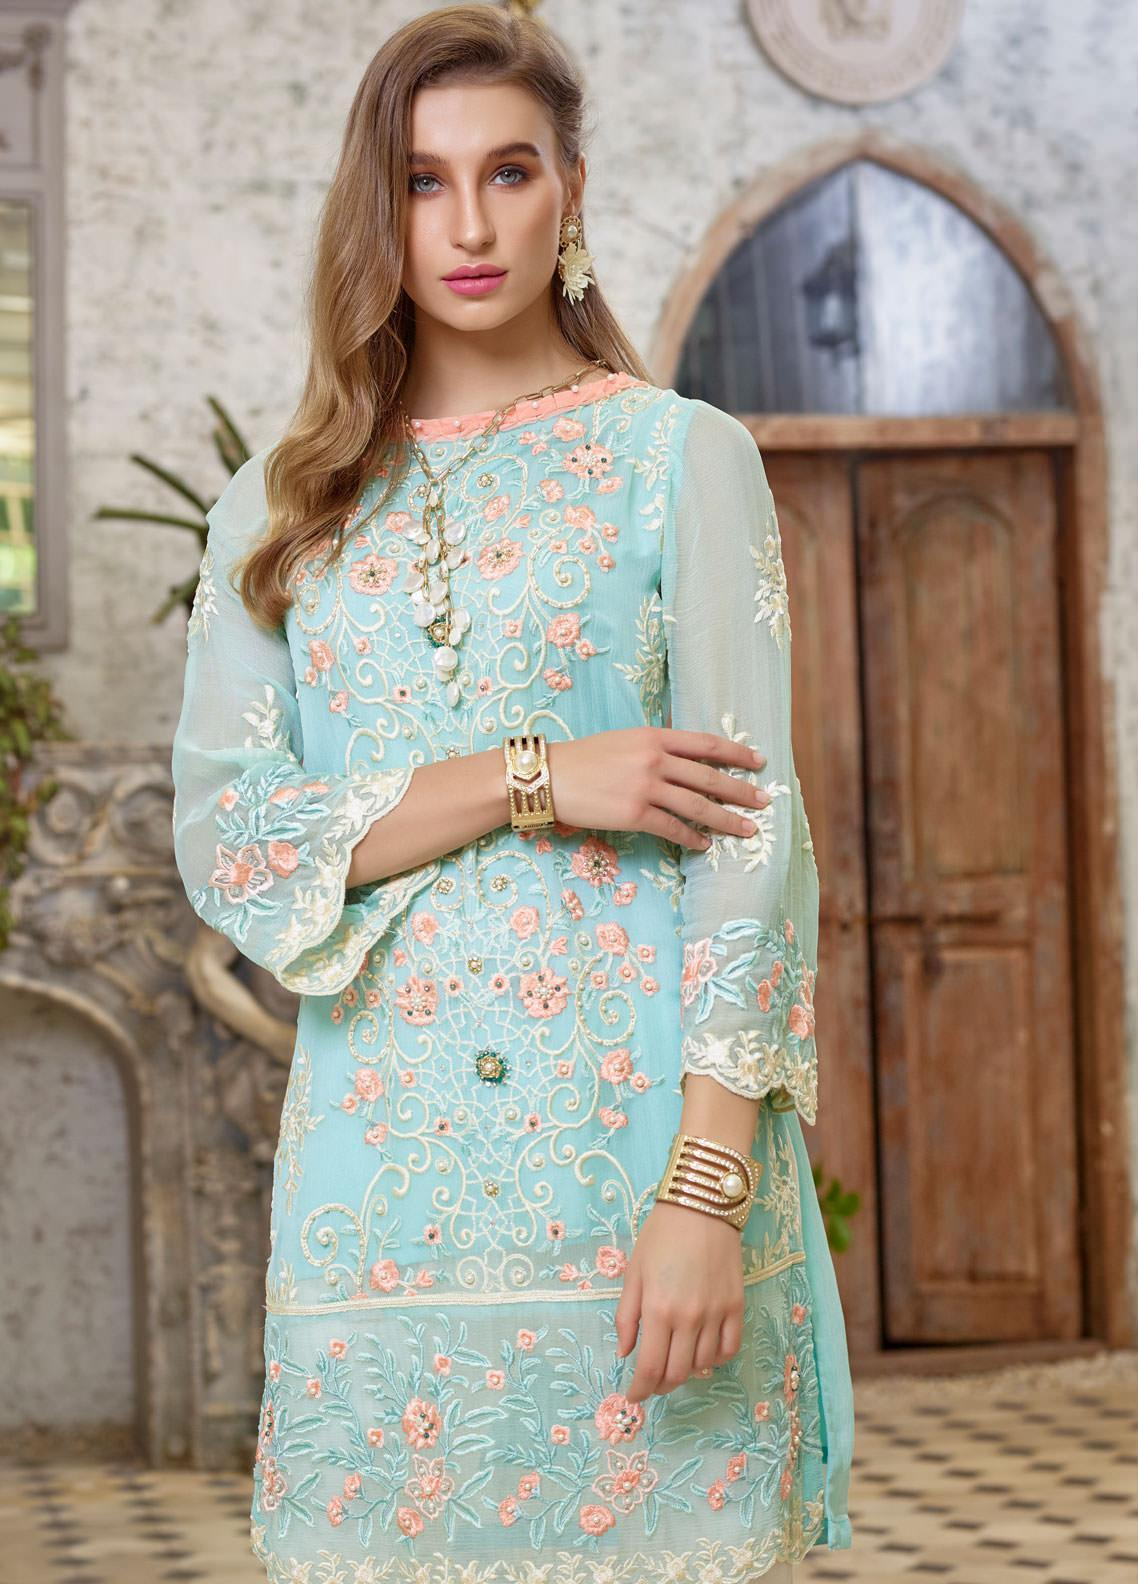 Azure Embroidered Chiffon Unstitched Kurties AZU19F 02 ECLECTIC BLOOMS - Festive Collection